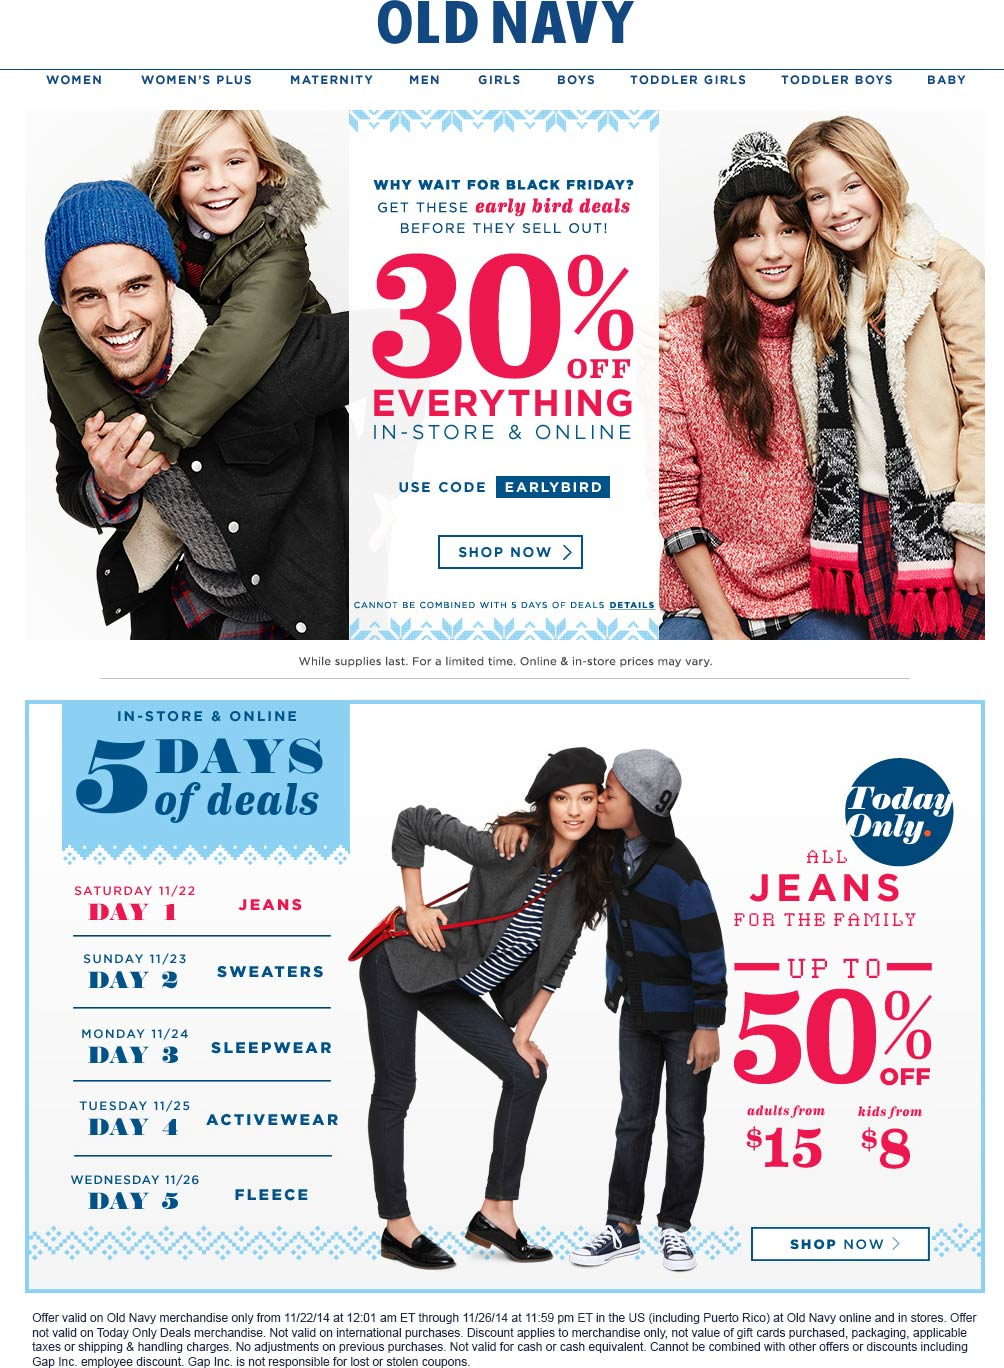 Old Navy Coupon December 2016 30% off everything at Old Navy, or online via promo code EARLYBIRD